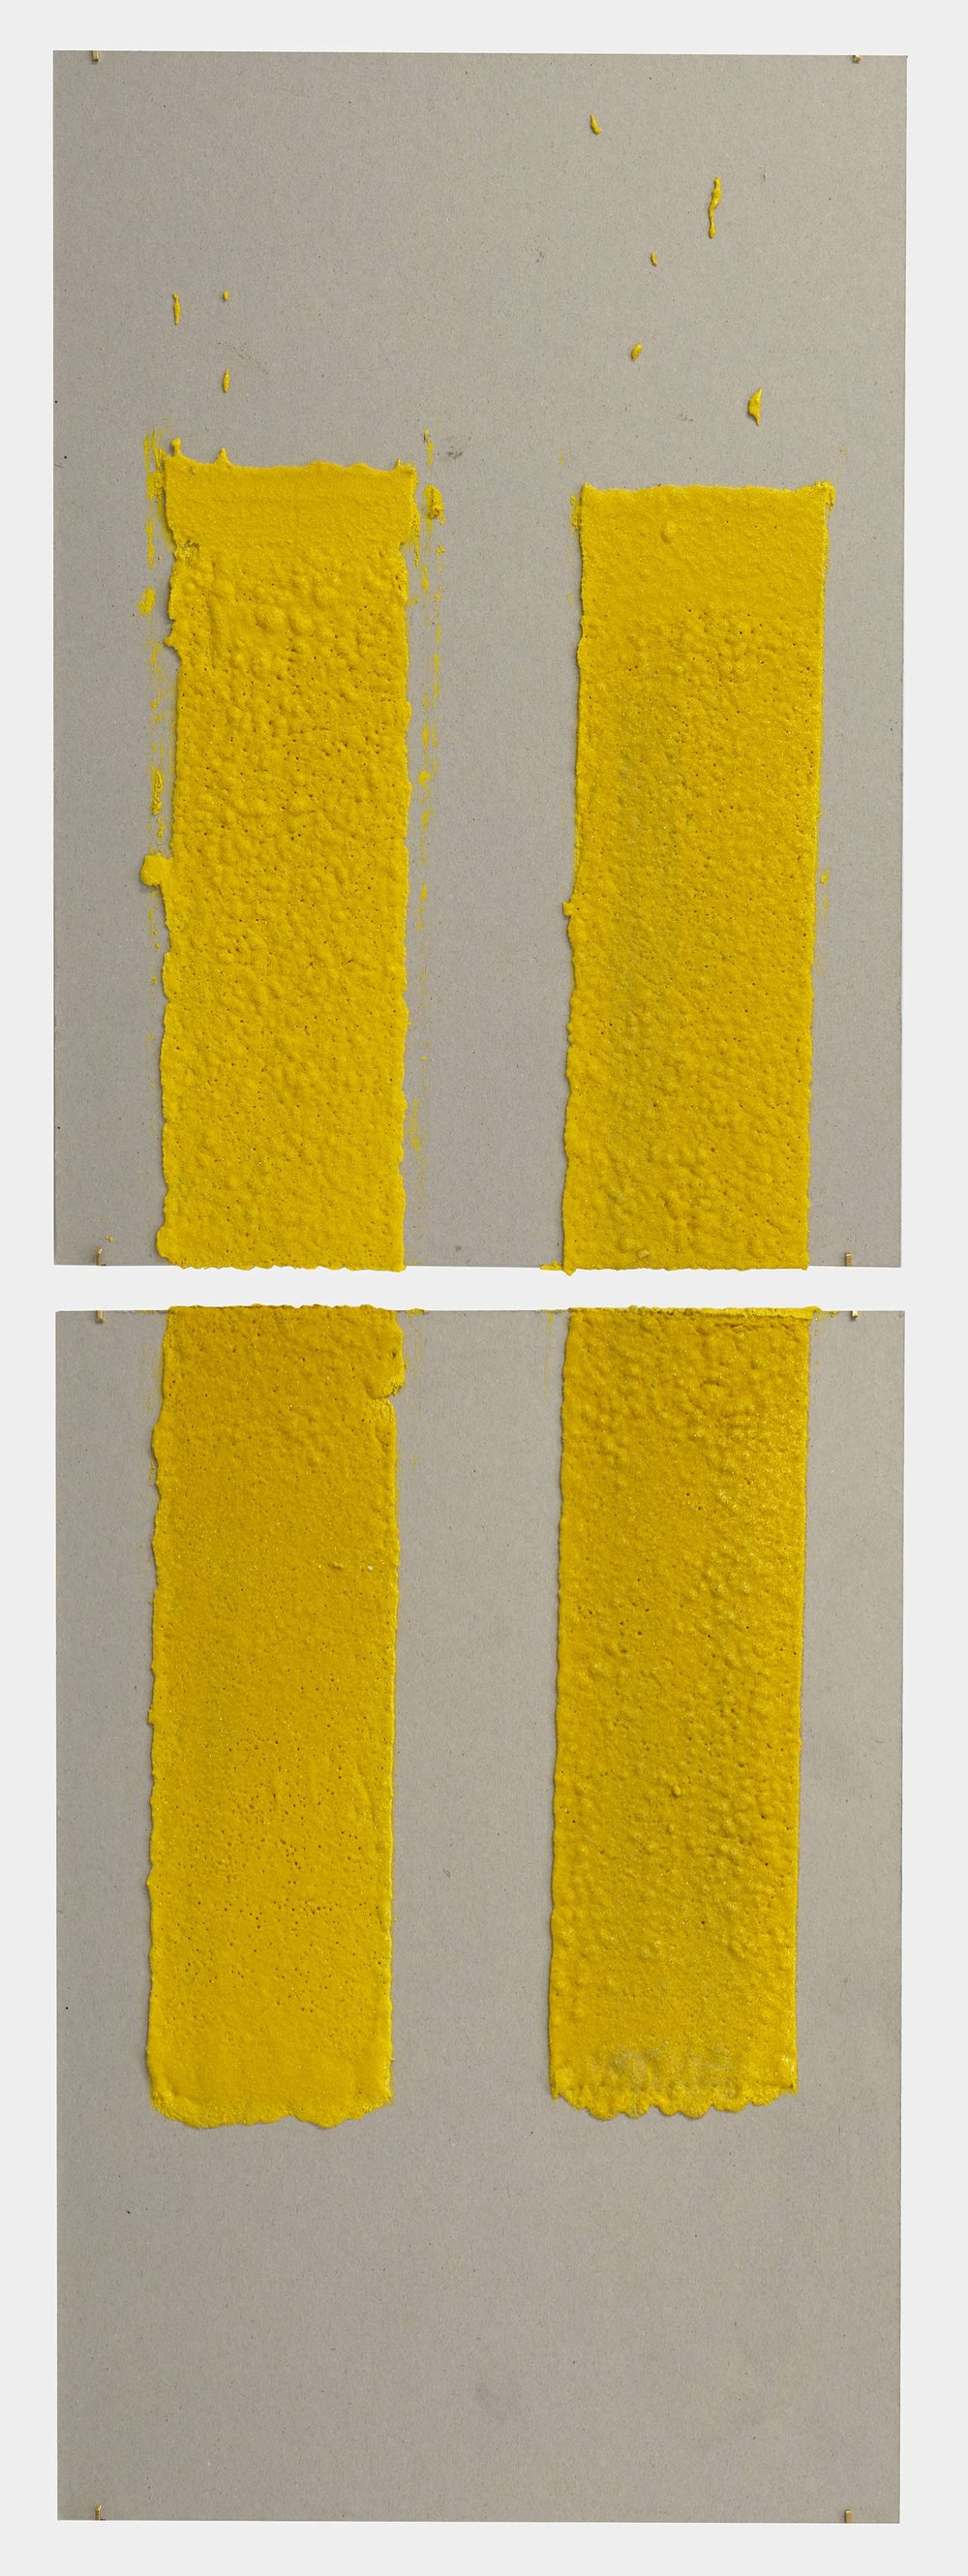 4in (section) (W), 2.27mm (T), Yellow, Double Yellow discontinuous, Manual marking, Lewis St, Btw Delancey St - Grand St,  2018  Thermoplastic paint, reflective glass particles on grey board  Diptych: 50 x 35 cm each